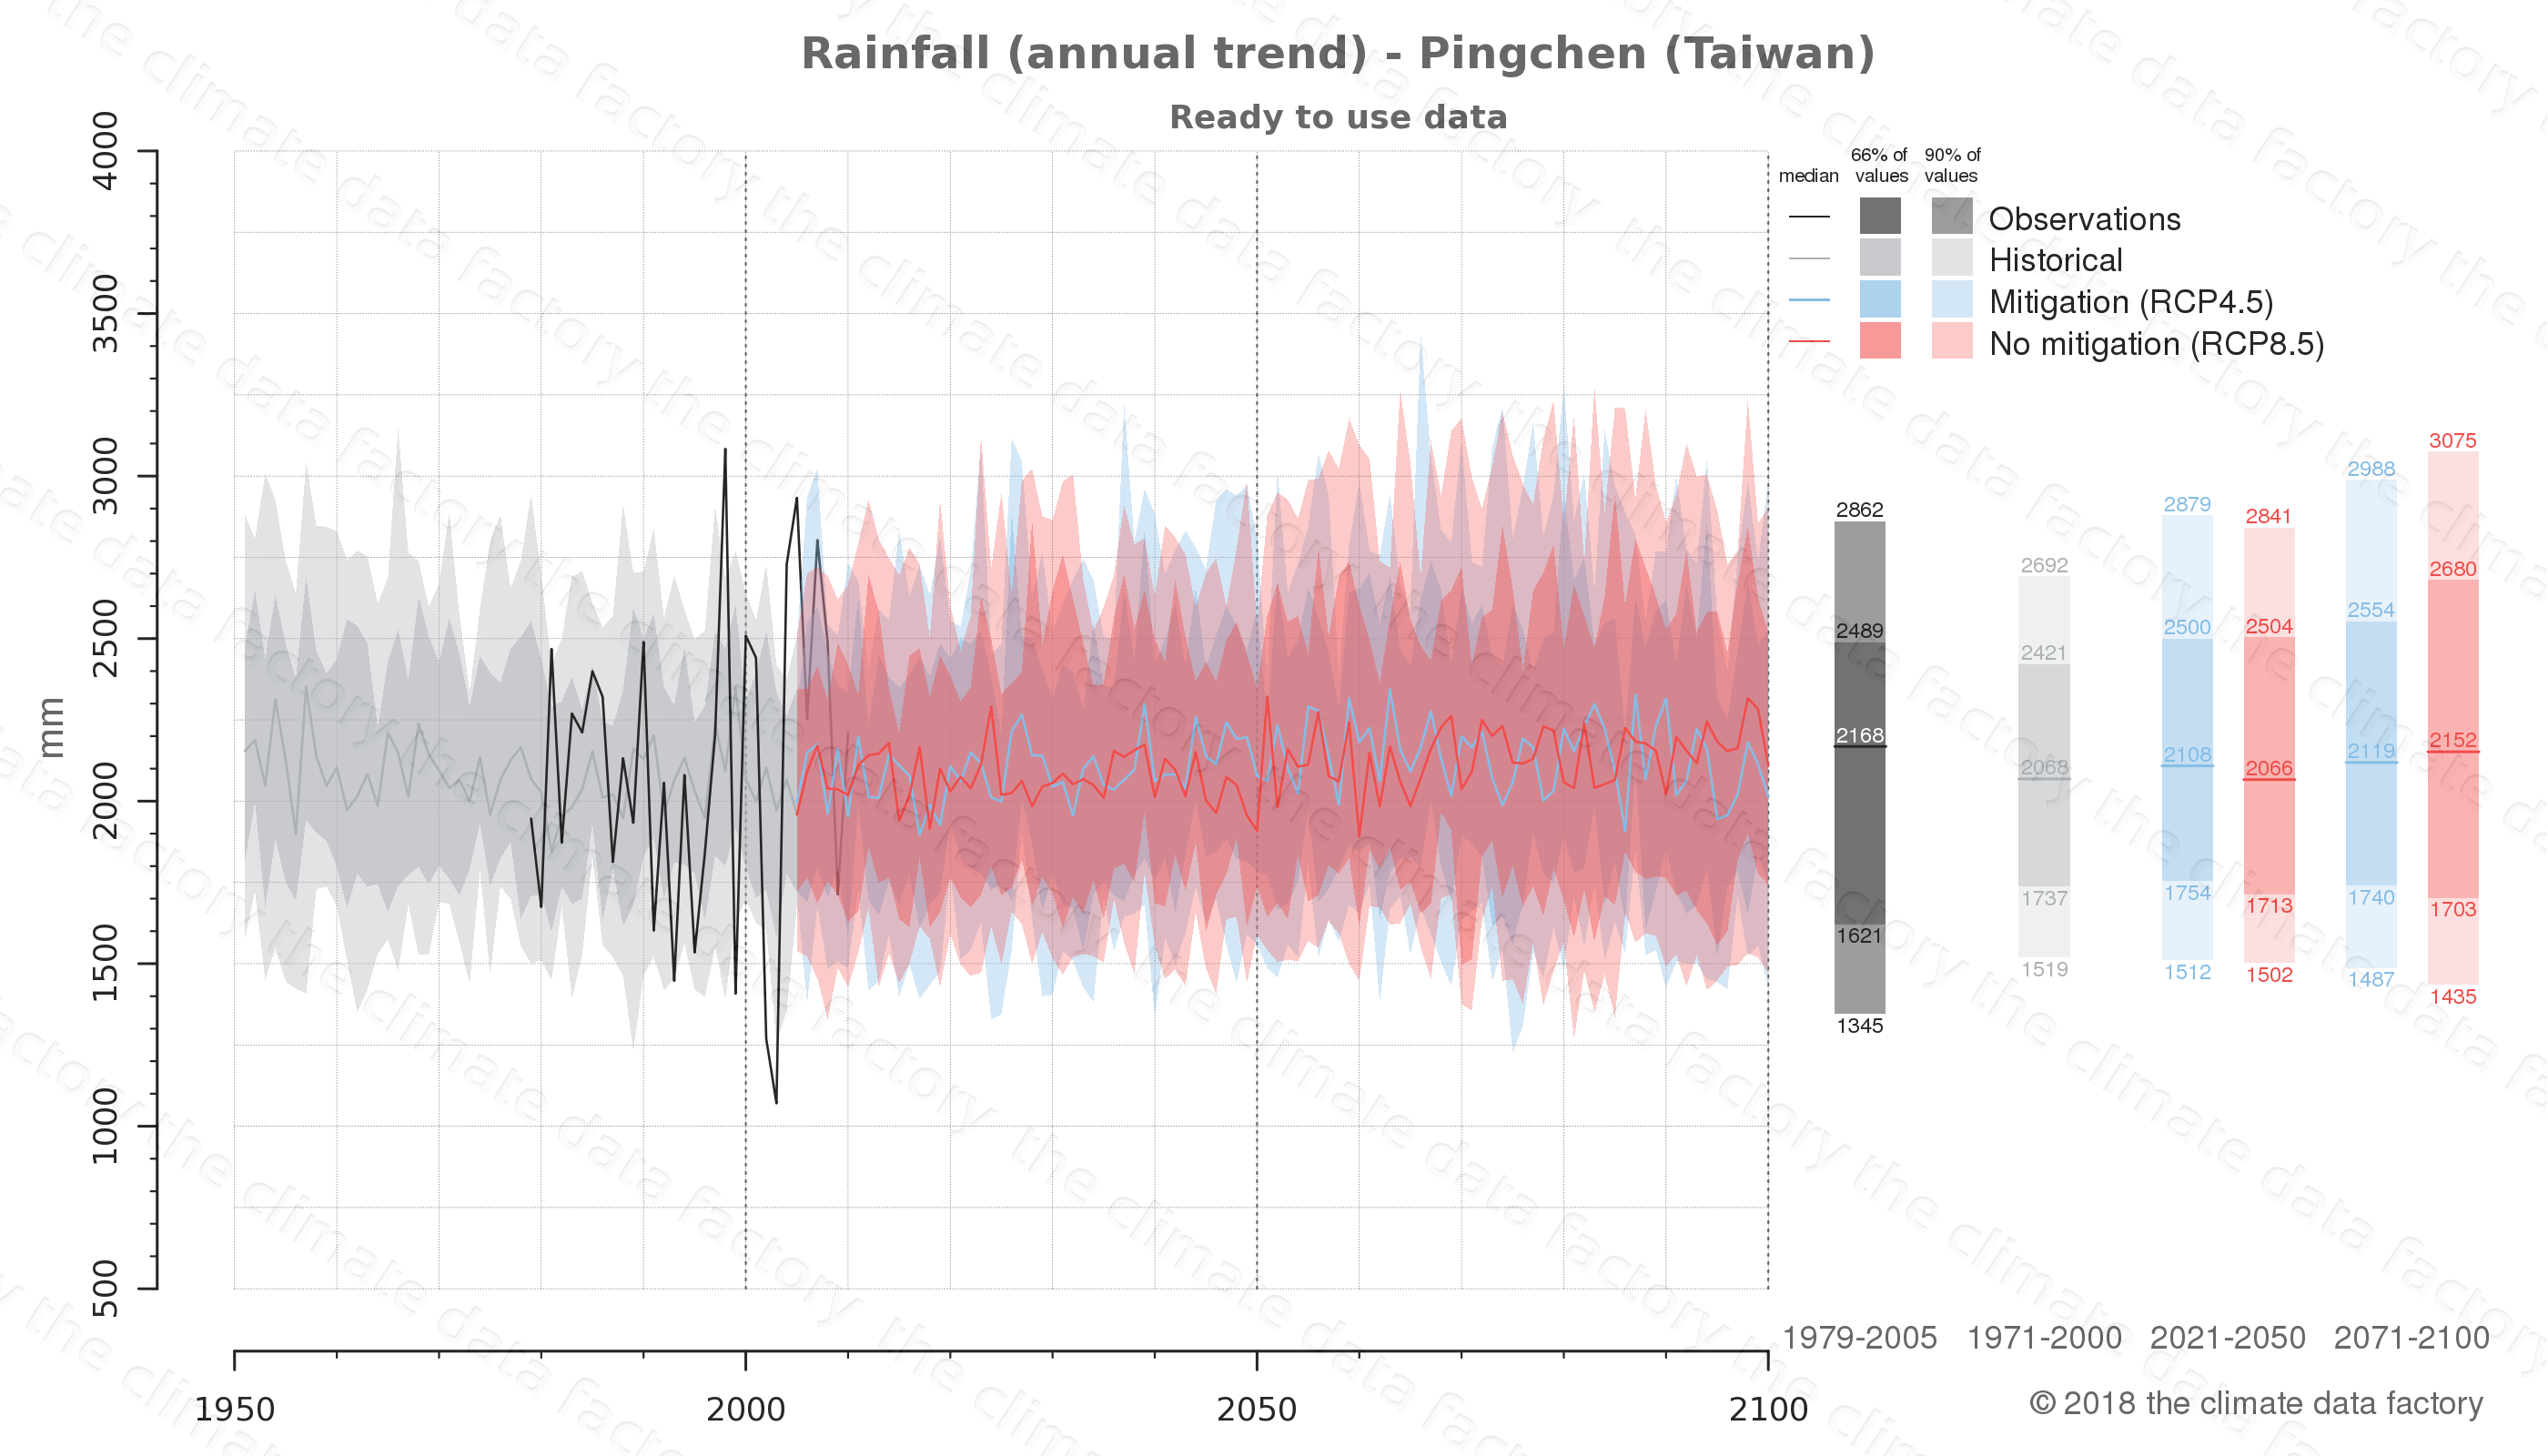 climate change data policy adaptation climate graph city data rainfall pingchen taiwan